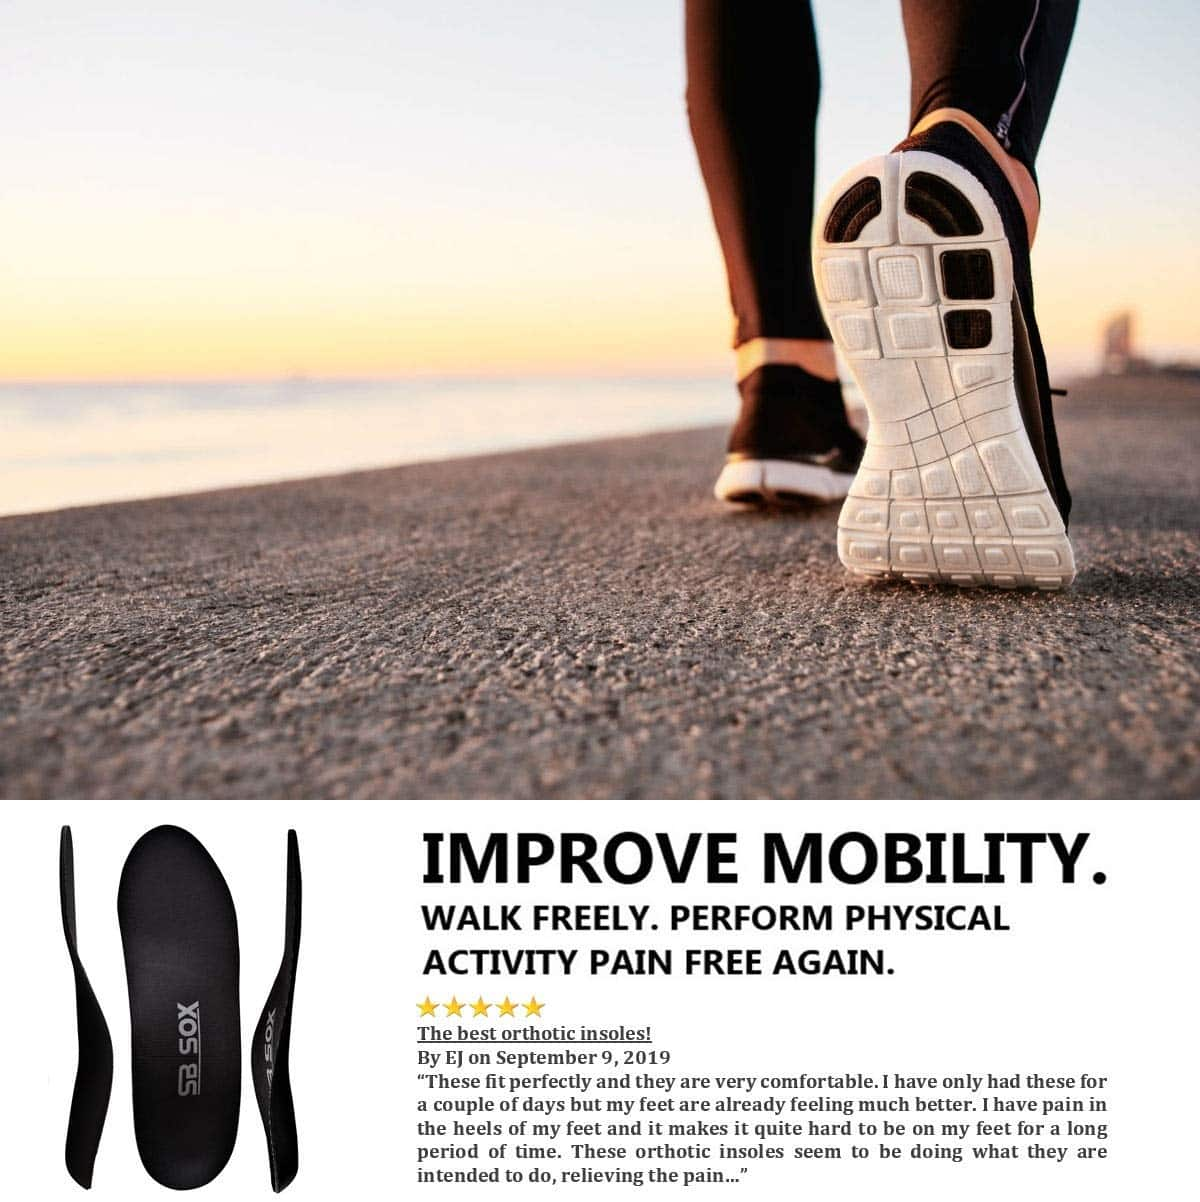 SB SOX Plantar Fasciitis /& Arch Support Shoe Insert Insoles for Men /& Women Pair Heel Provides Foot Best Orthotic Inserts for Daily Use Arch Support That You Need